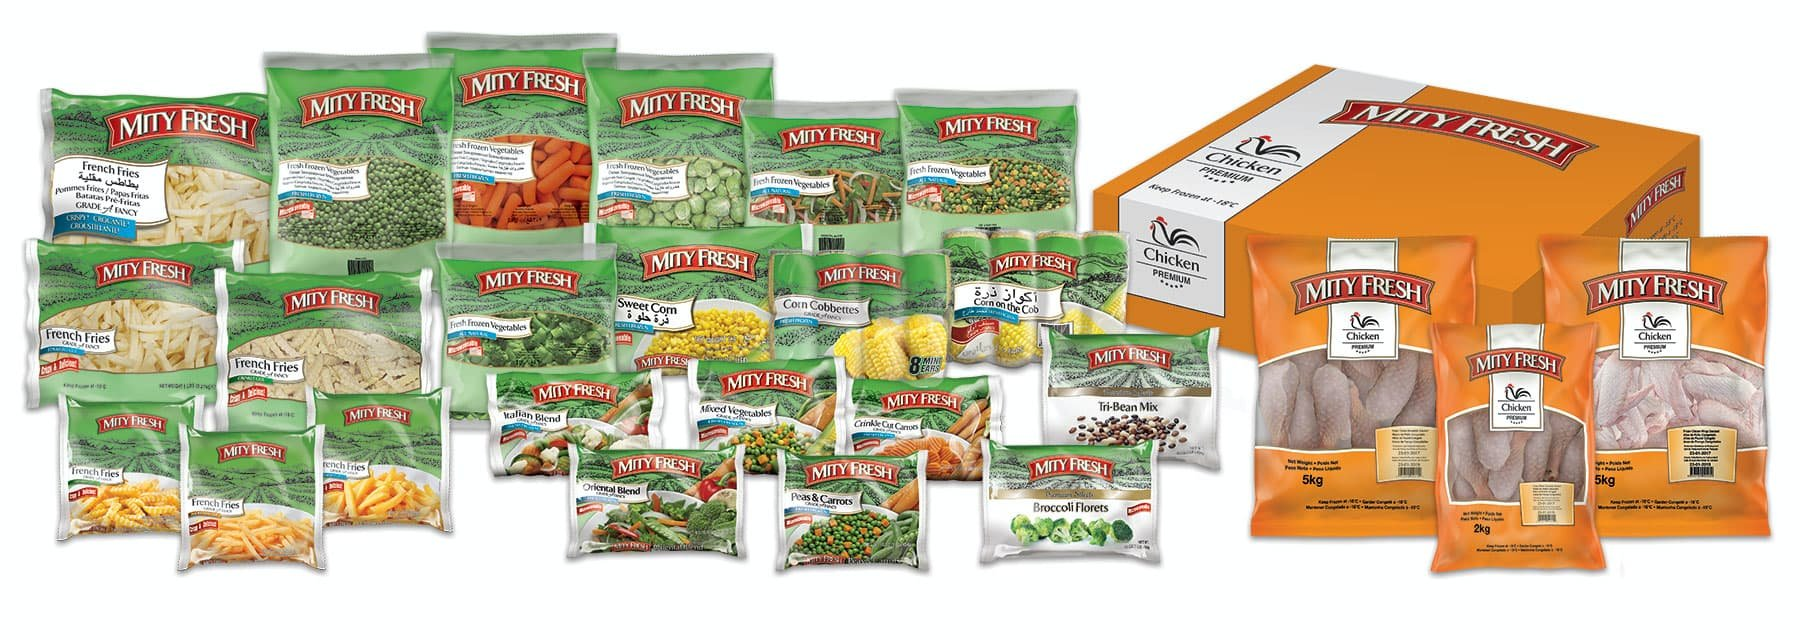 Mity Fresh line of products